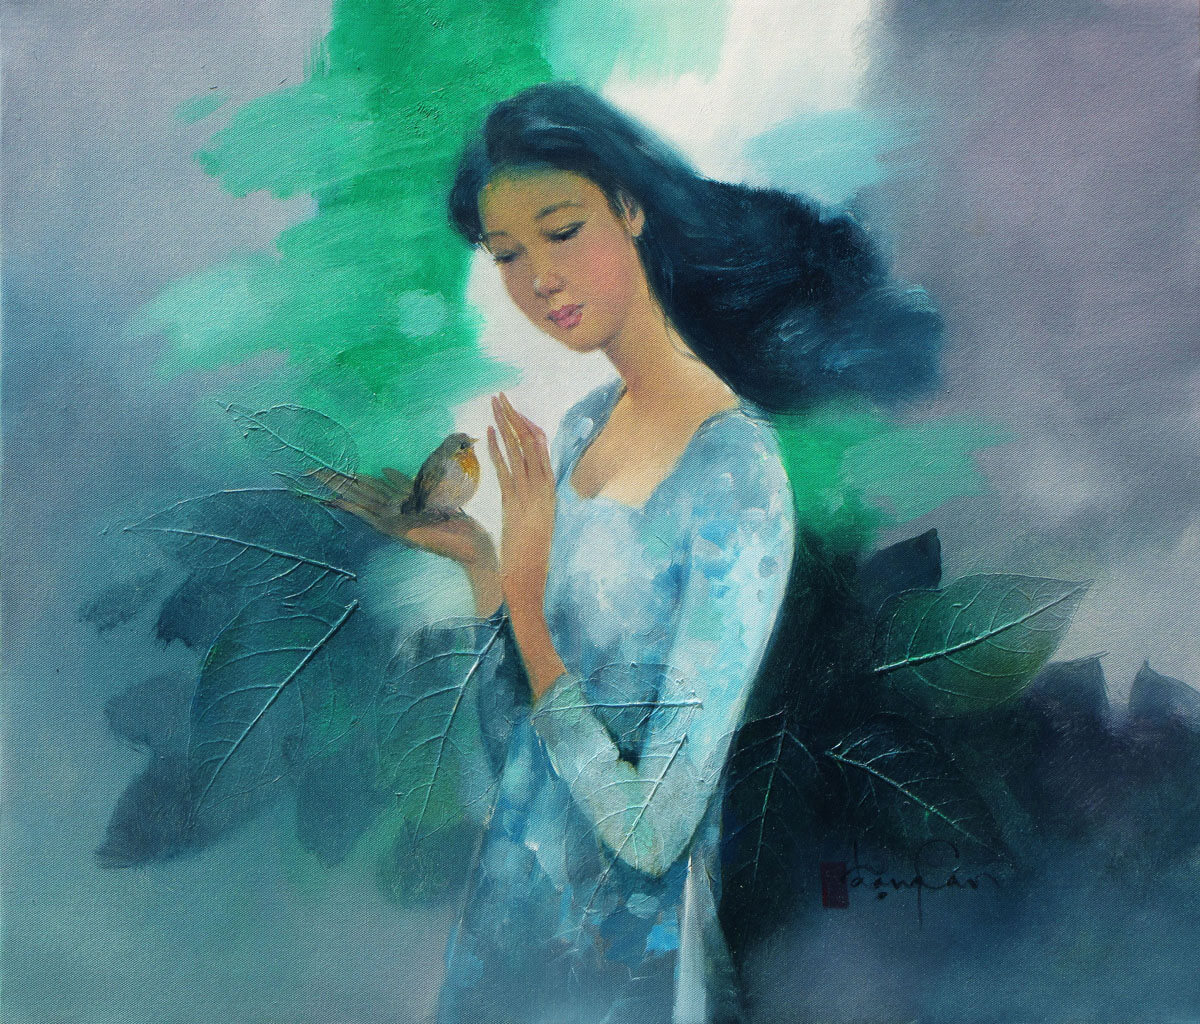 Young lady and the bird-Original Vietnamese Art